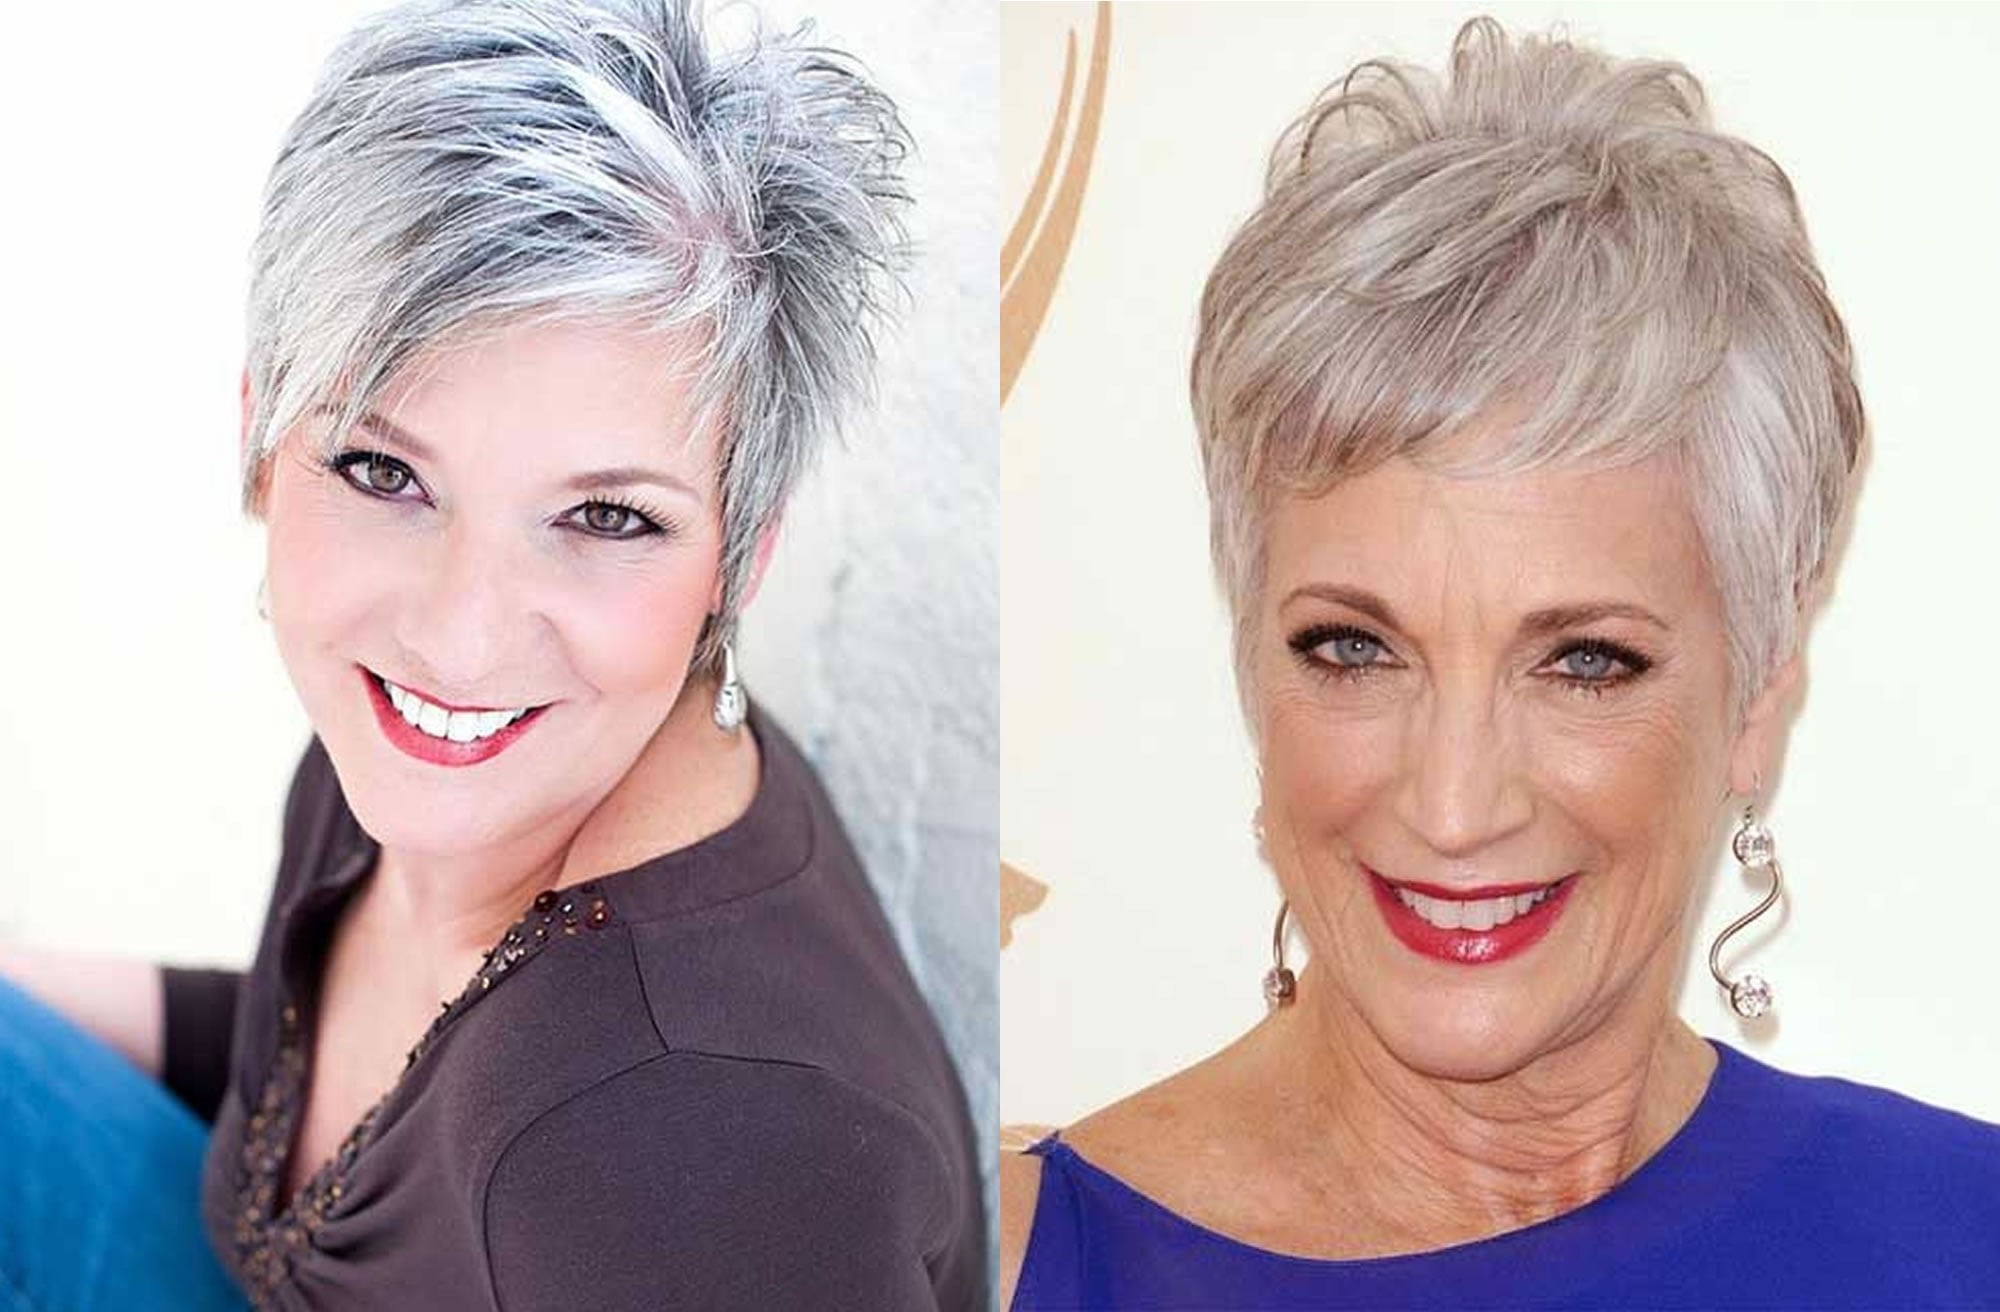 Short Hairstyles 2019: Short Pixie Haircut And Hairstyles For Older Women For